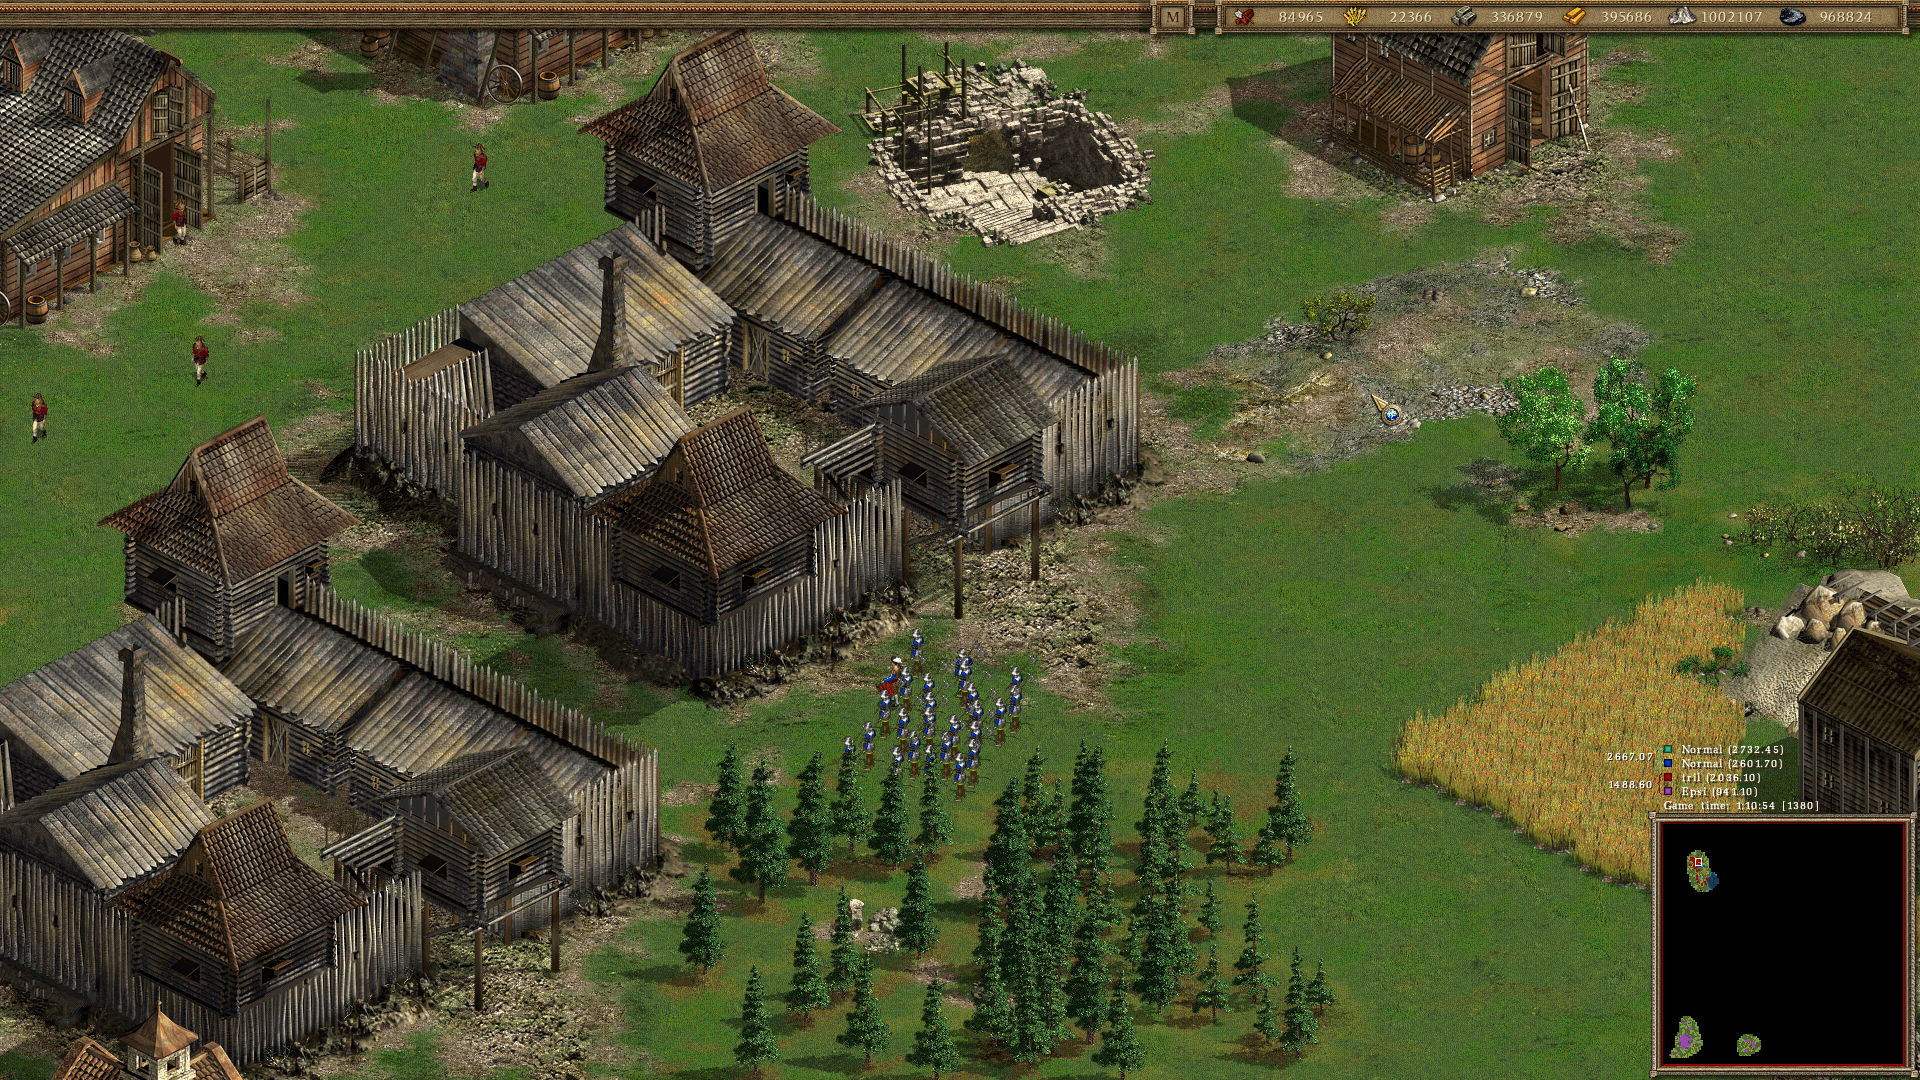 American Conquest Screenshots for Windows - MobyGames